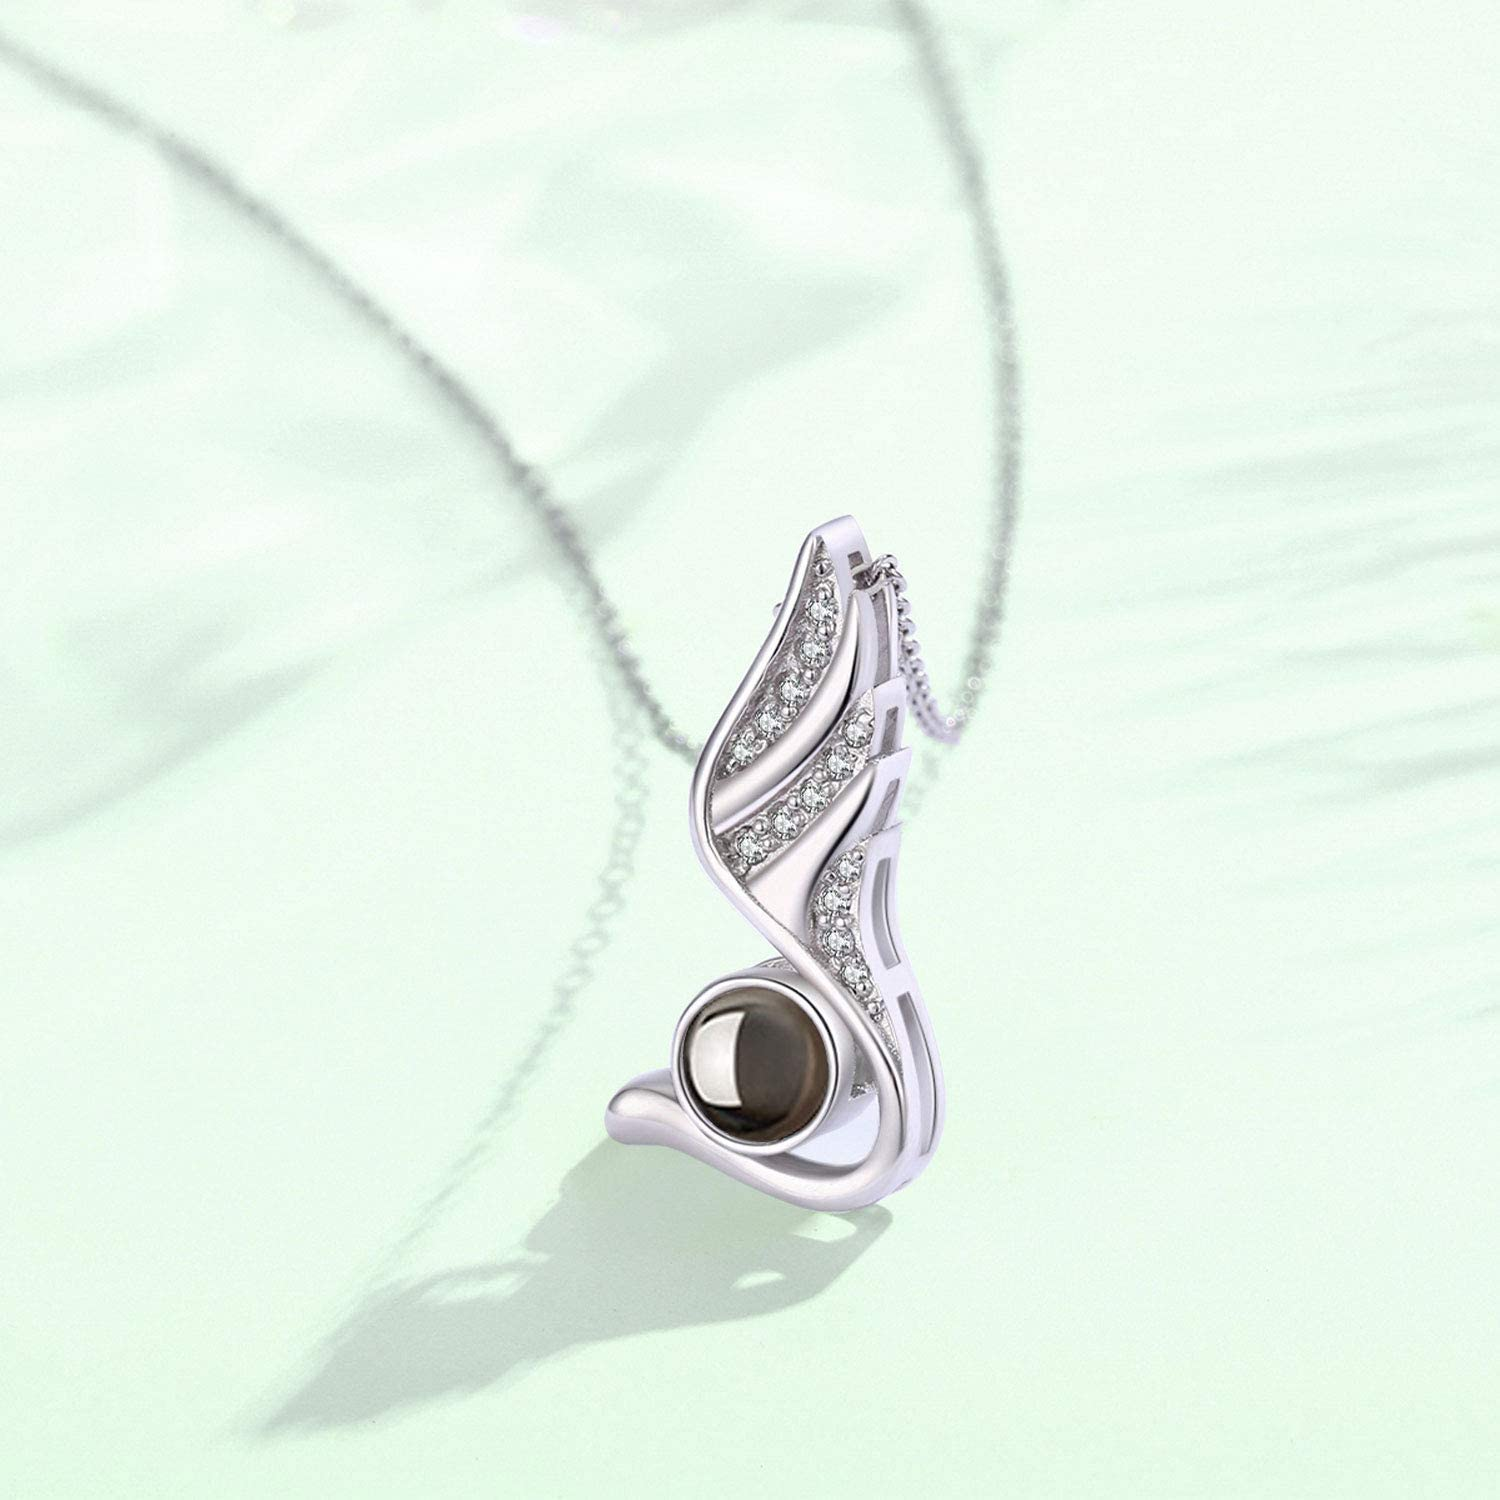 I Love You Necklace 100 Languages,Angle Swan Wing Pendant Projective Necklace for Women,Forever Love Best Jewelry Gift for Mom//Wife//Girlfriend